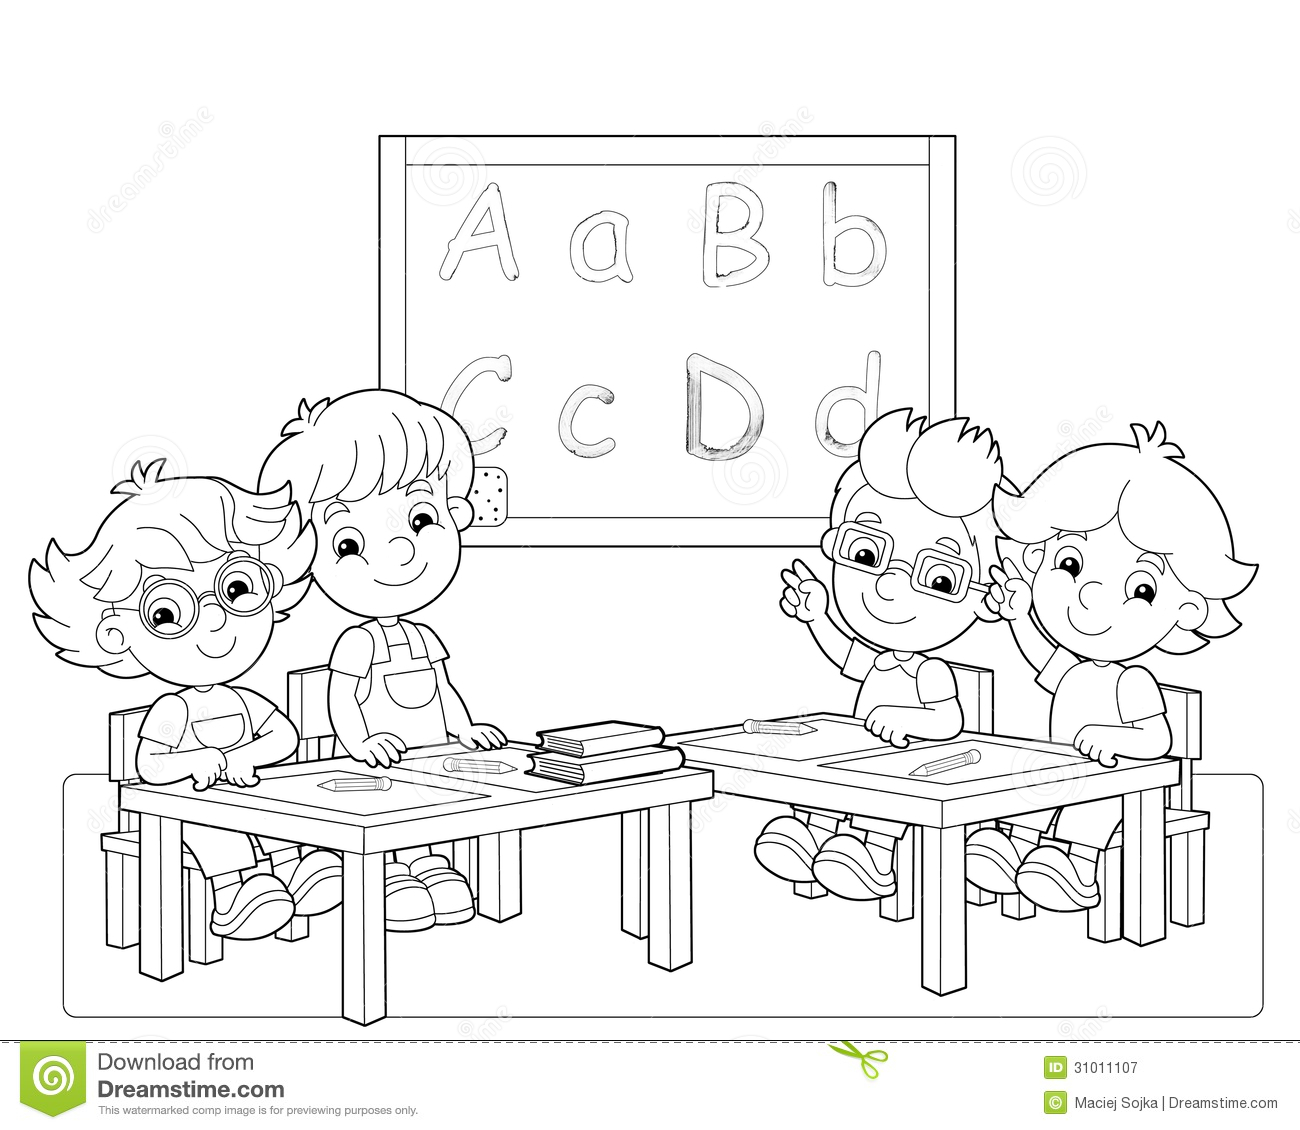 the page with exercises for kids coloring book illustration - Children Coloring Book